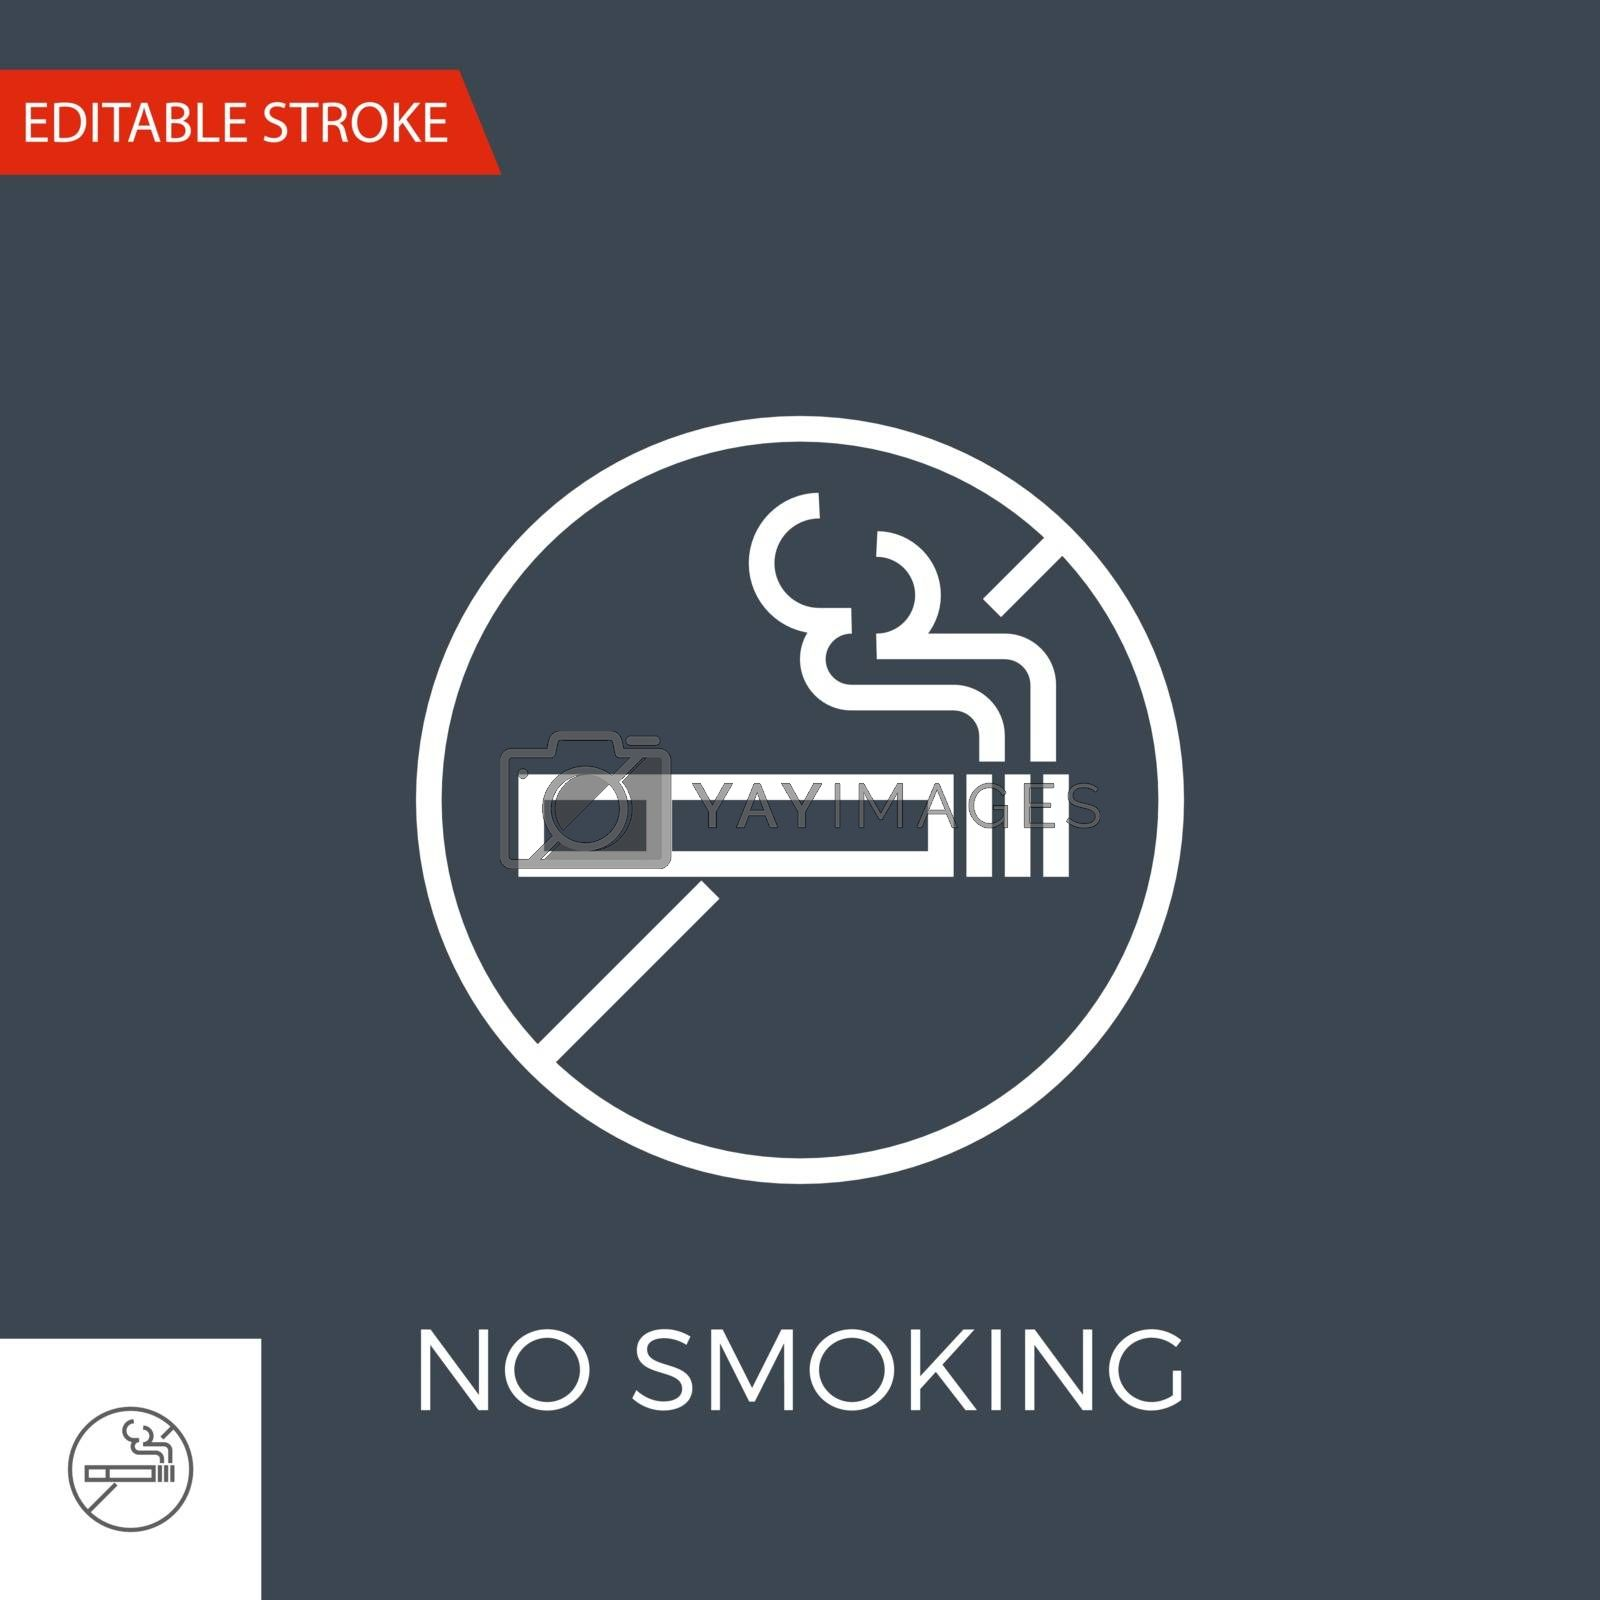 No Smoking Thin Line Vector Icon. Flat Icon Isolated on the Black Background. Editable Stroke EPS file. Vector illustration.